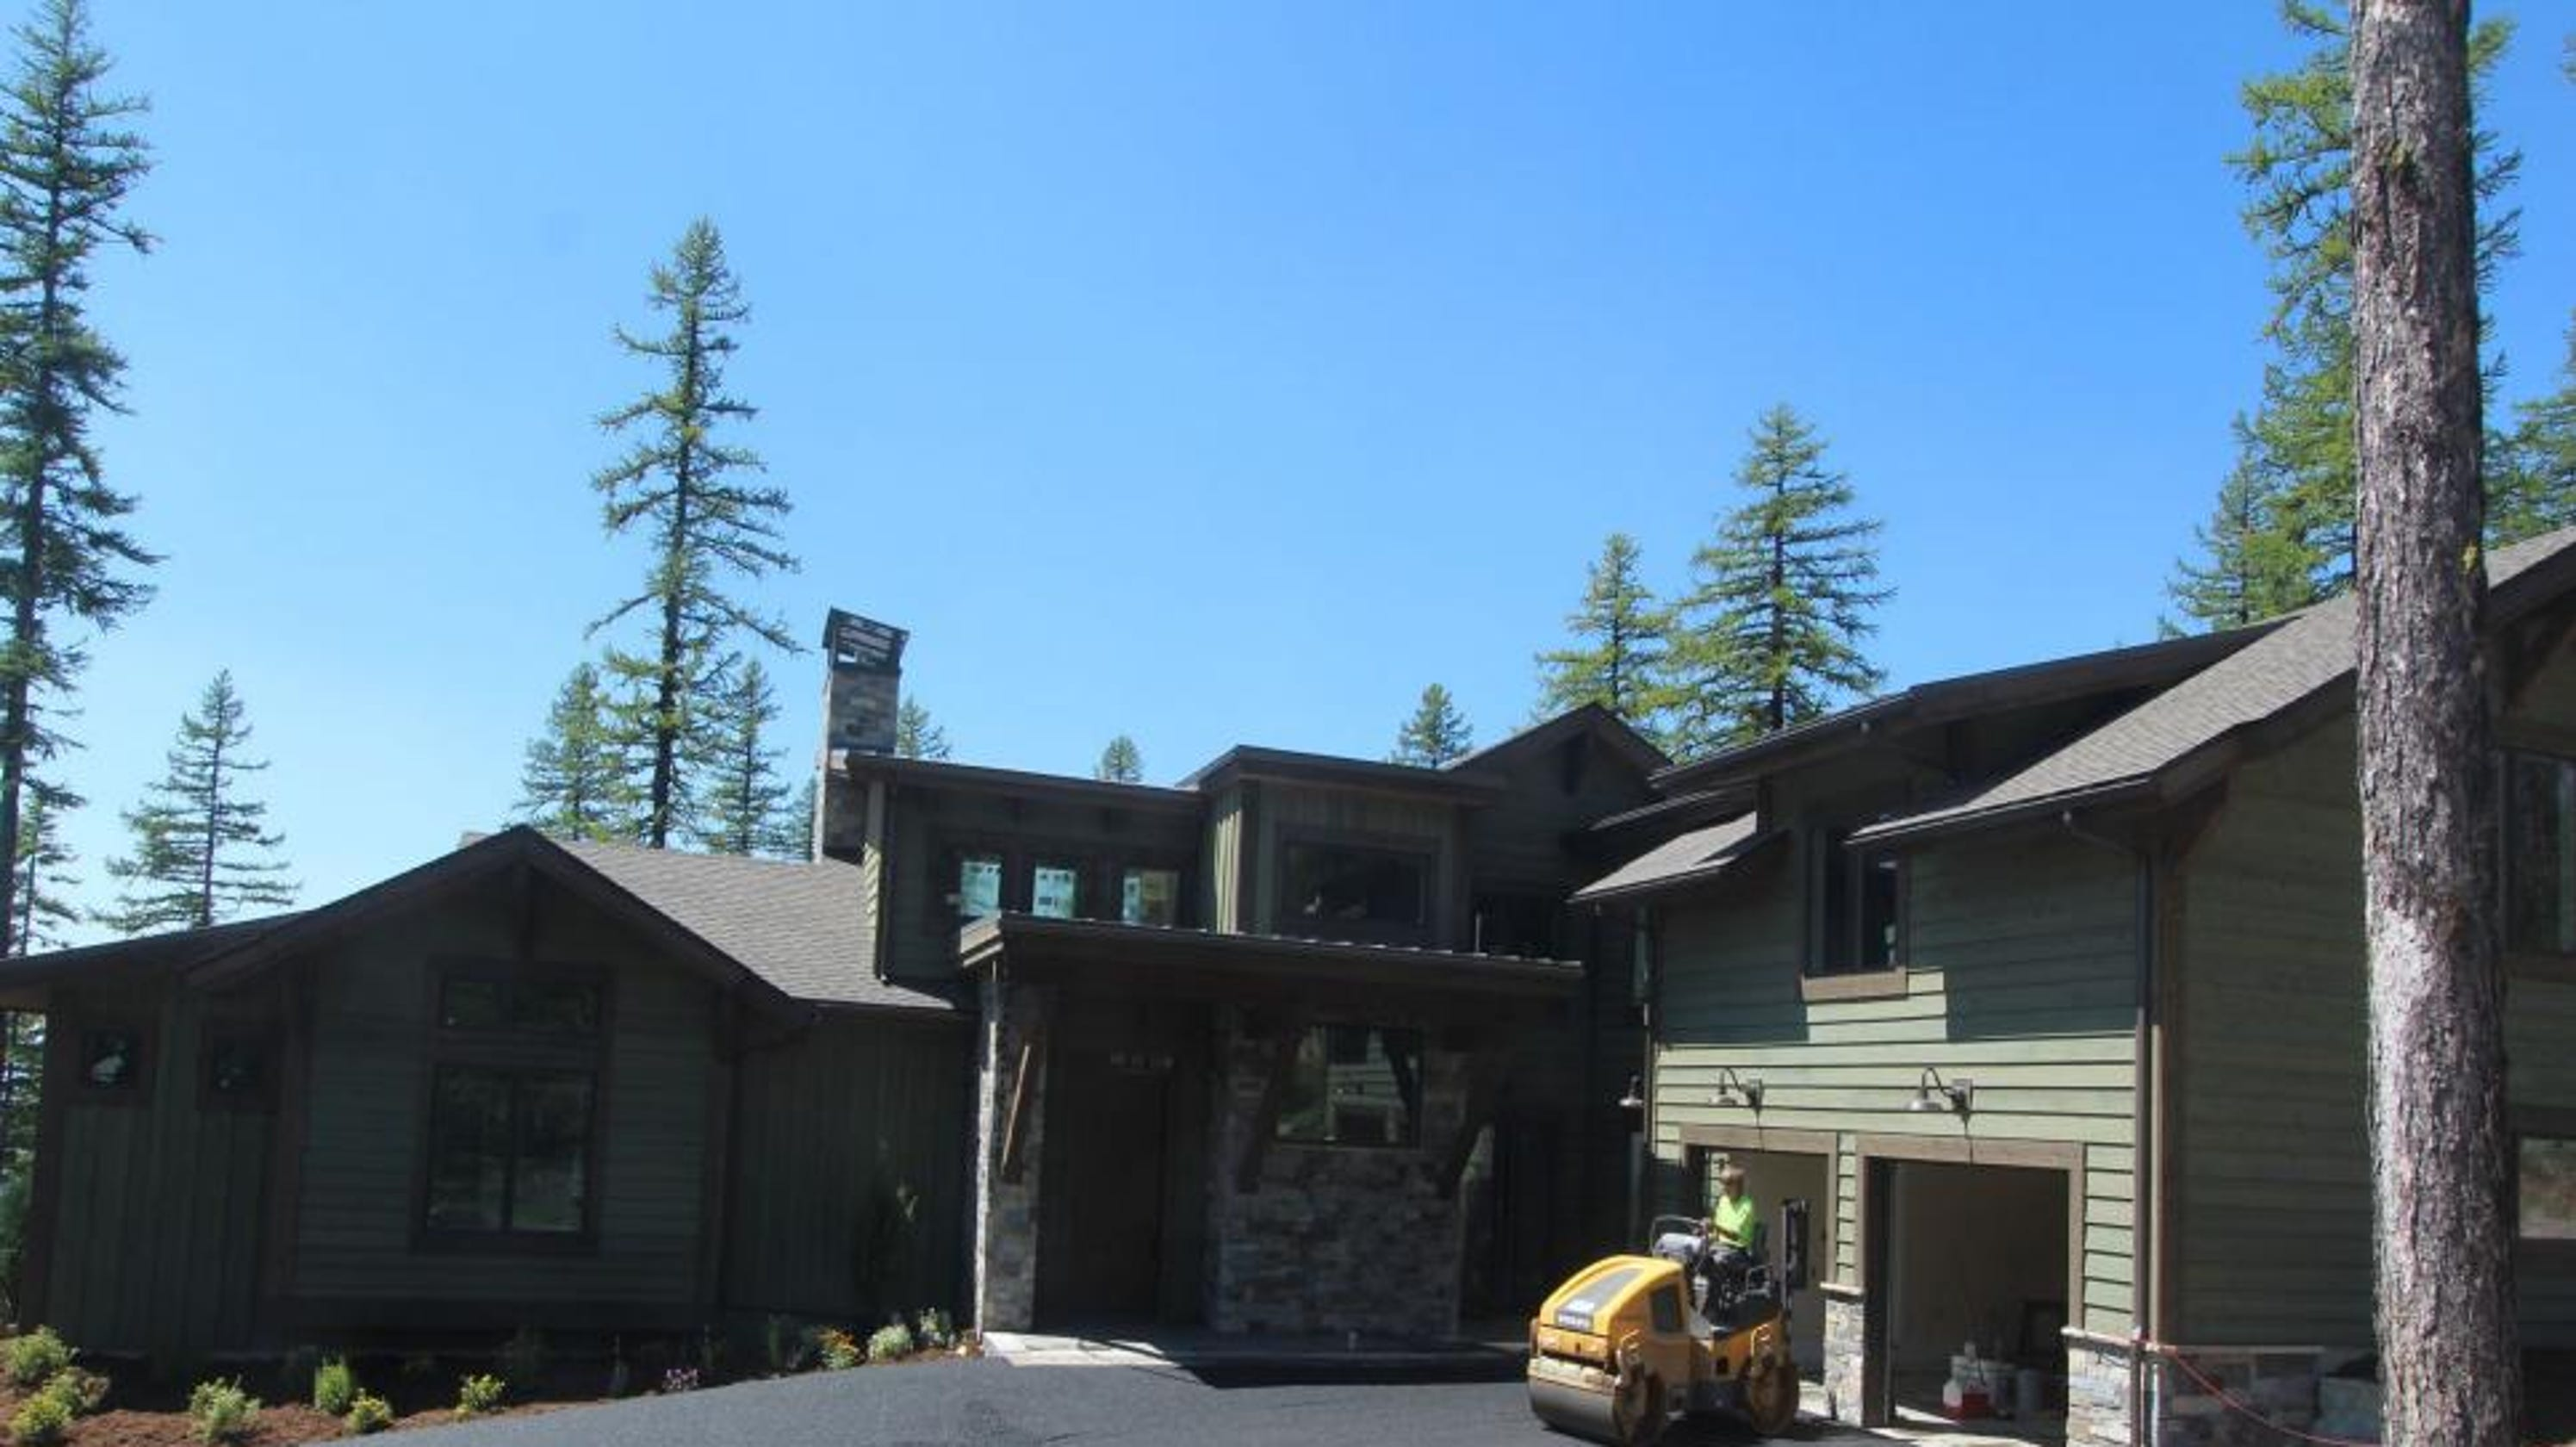 Hgtv Dream Home Underway In Whitefish